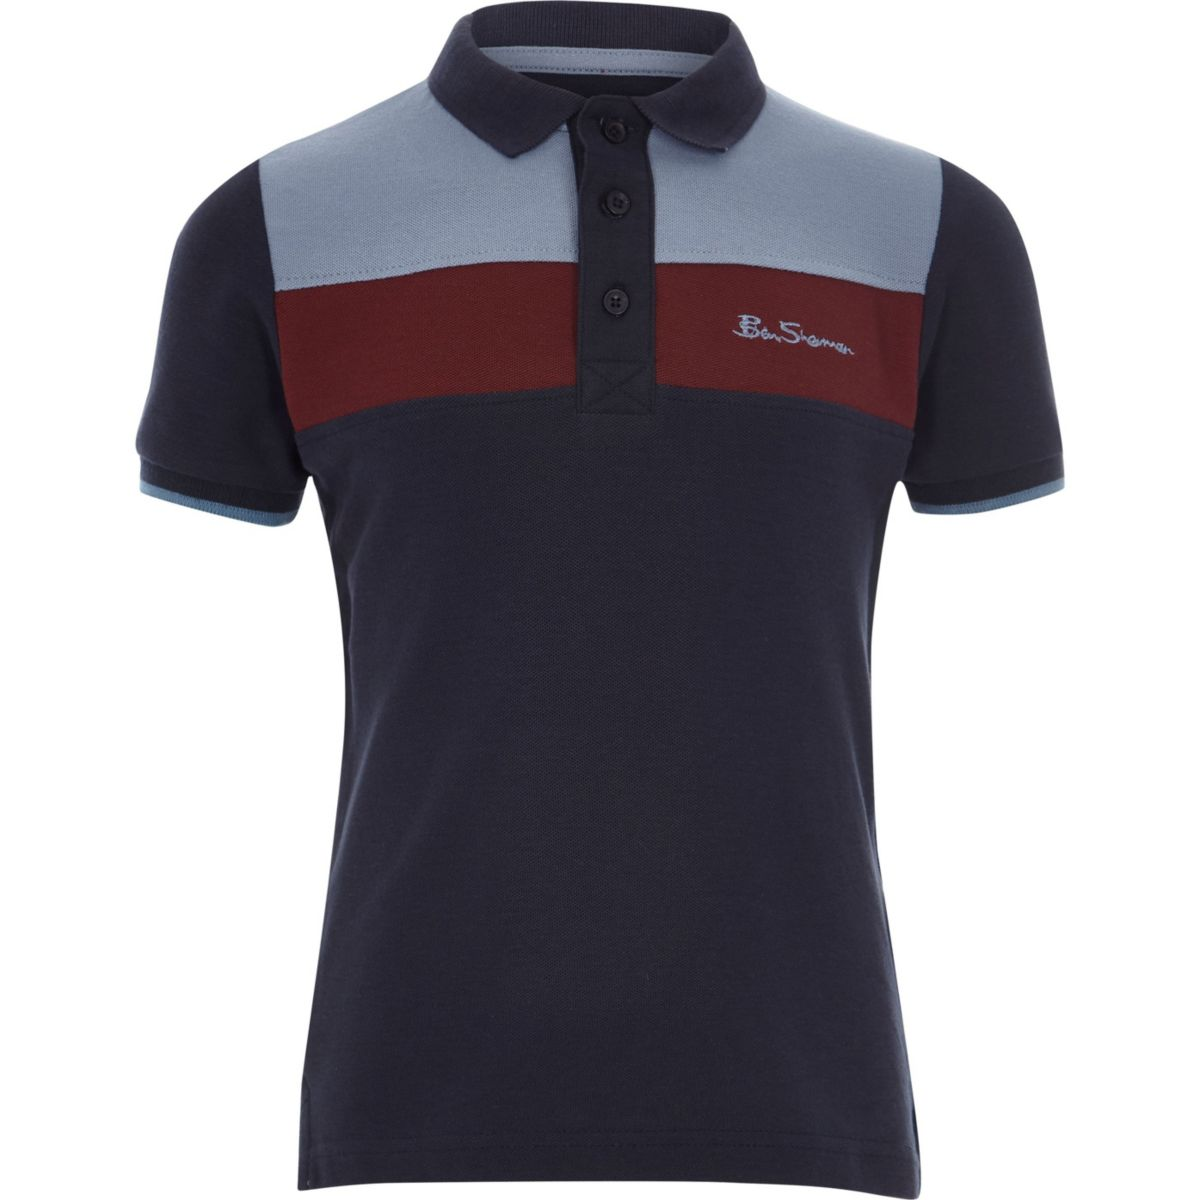 Boys Navy Ben Sherman Blocked Polo Shirt Polo Shirts Boys